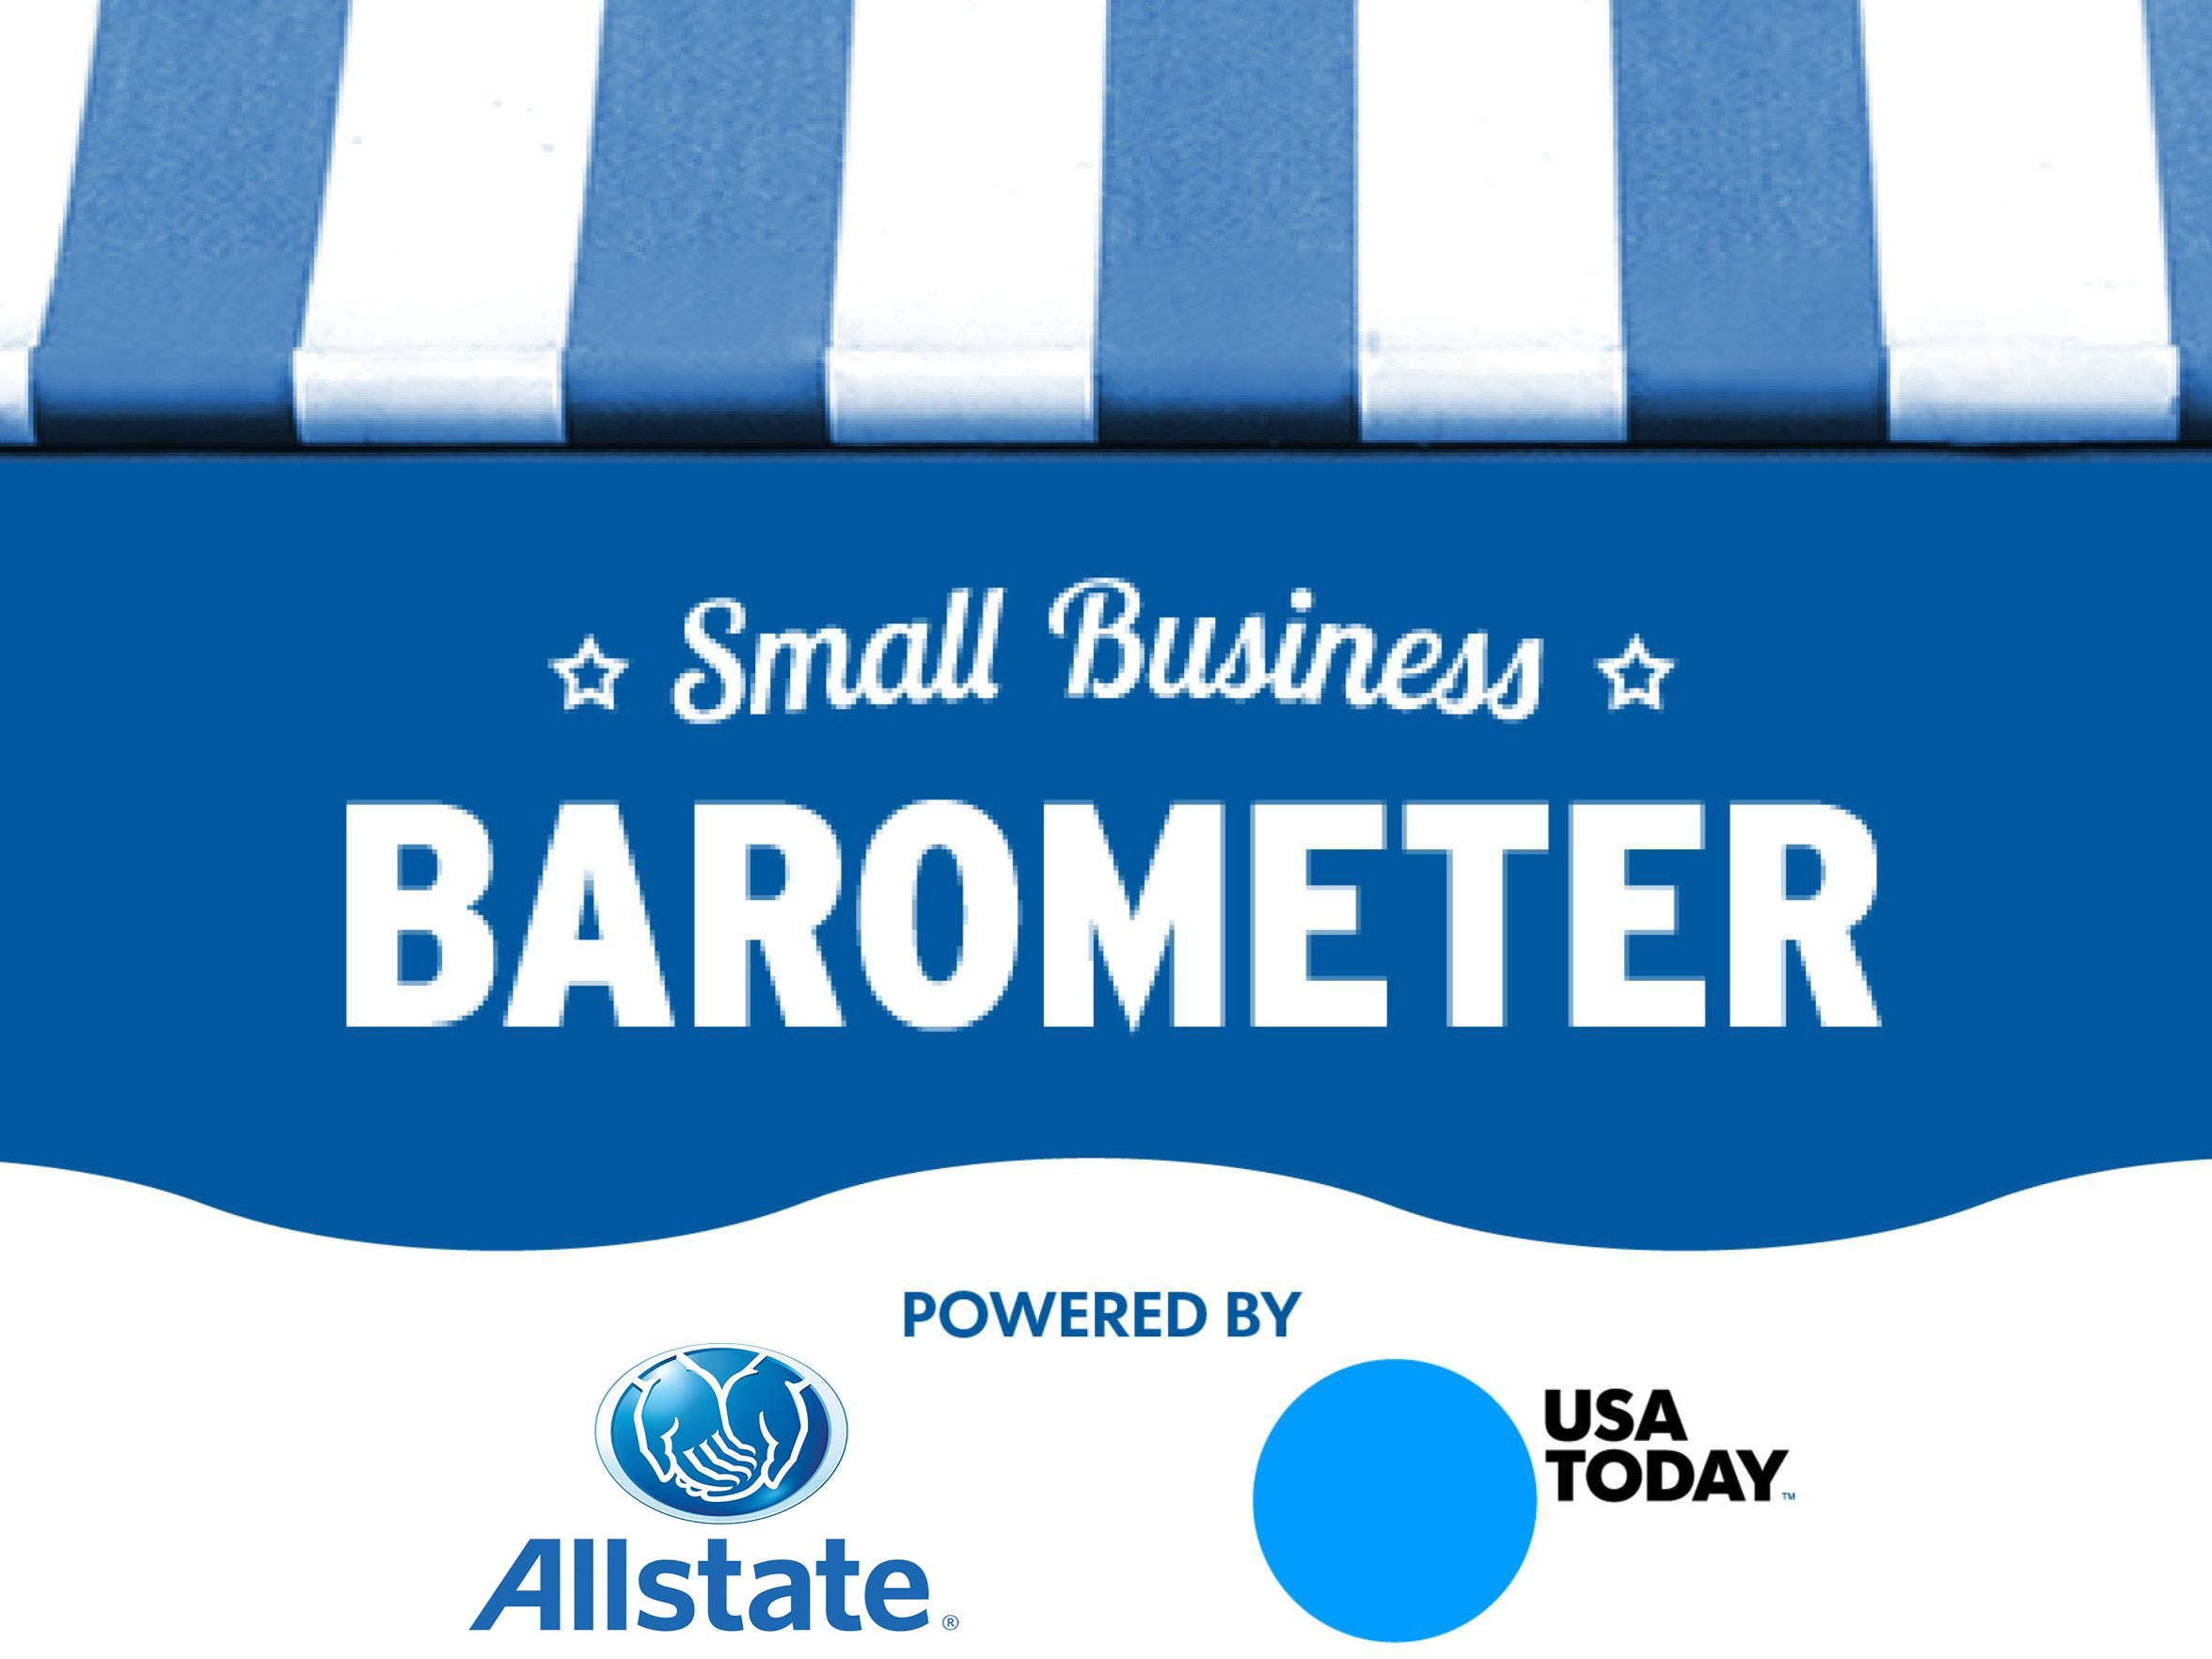 Small Business Barometer, powered by Allstate and USA